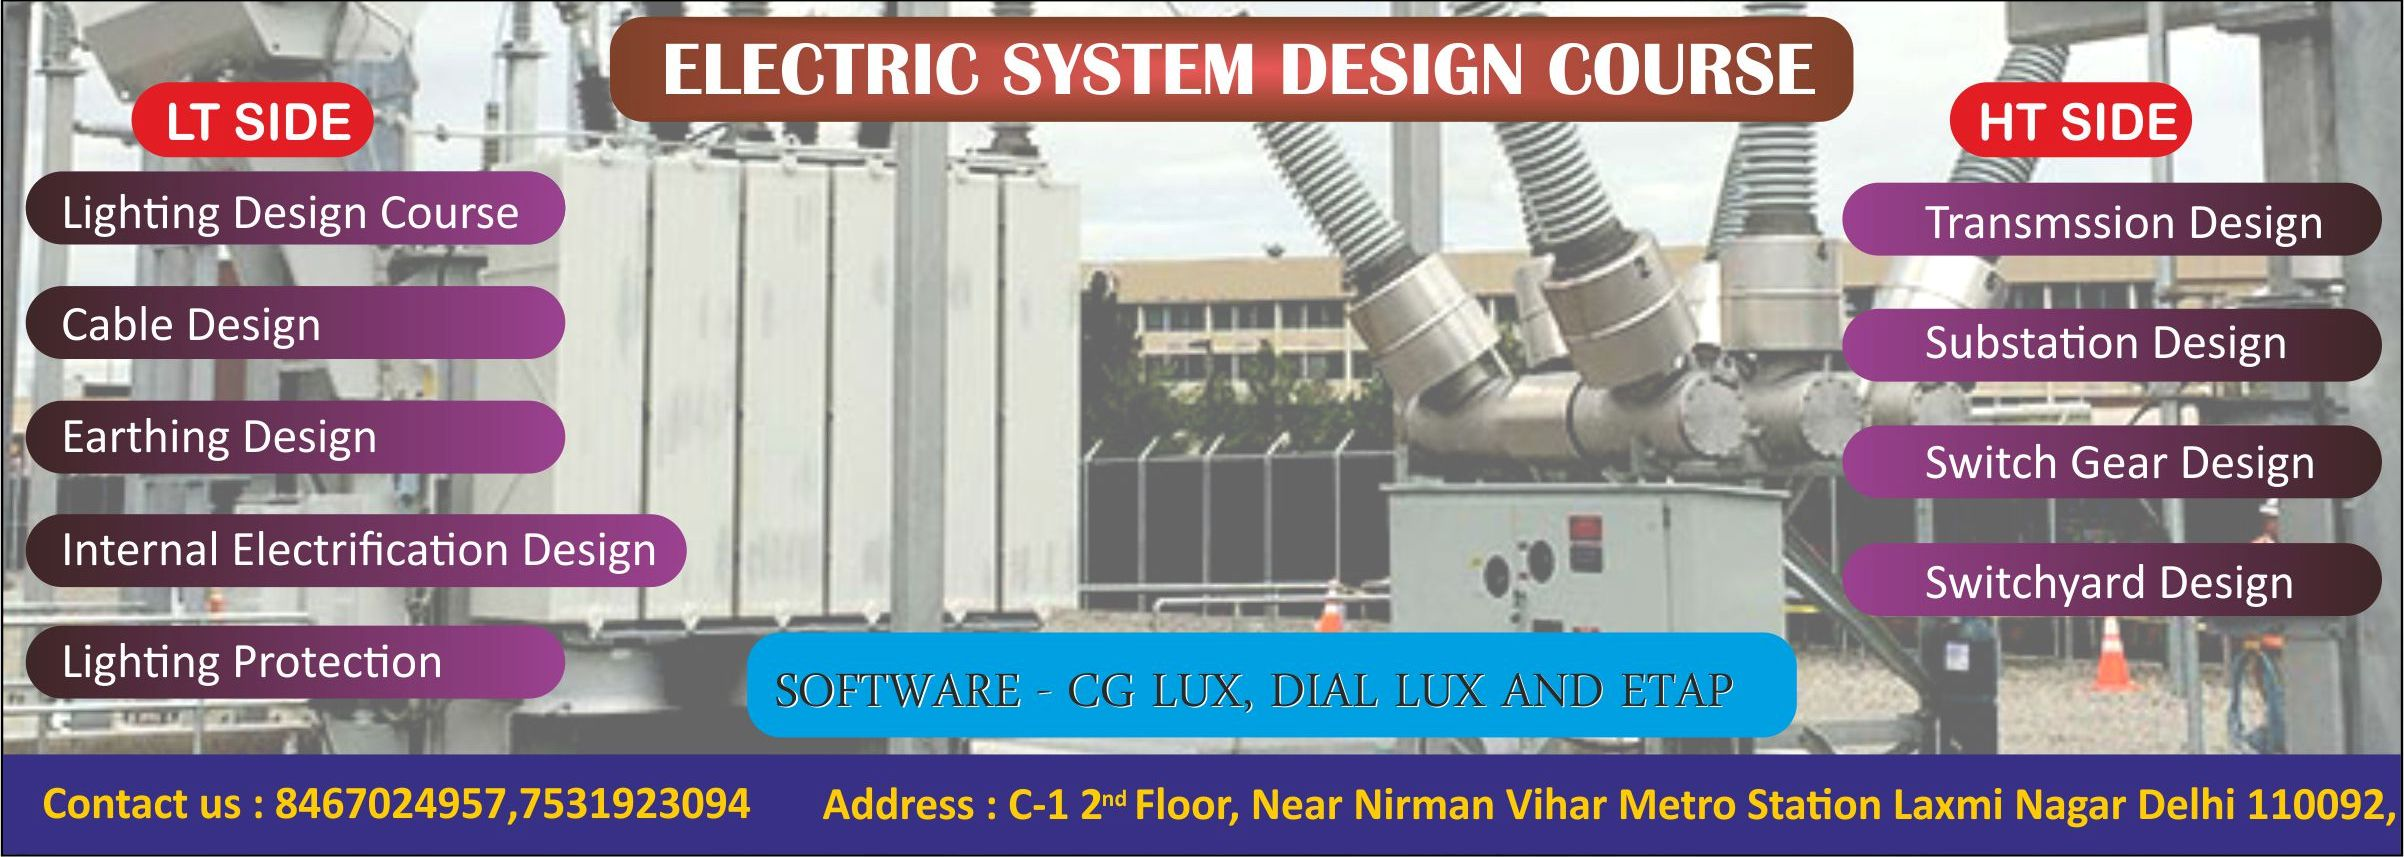 Training Fee & Schedule for Piping Designing, Civil, Hvac